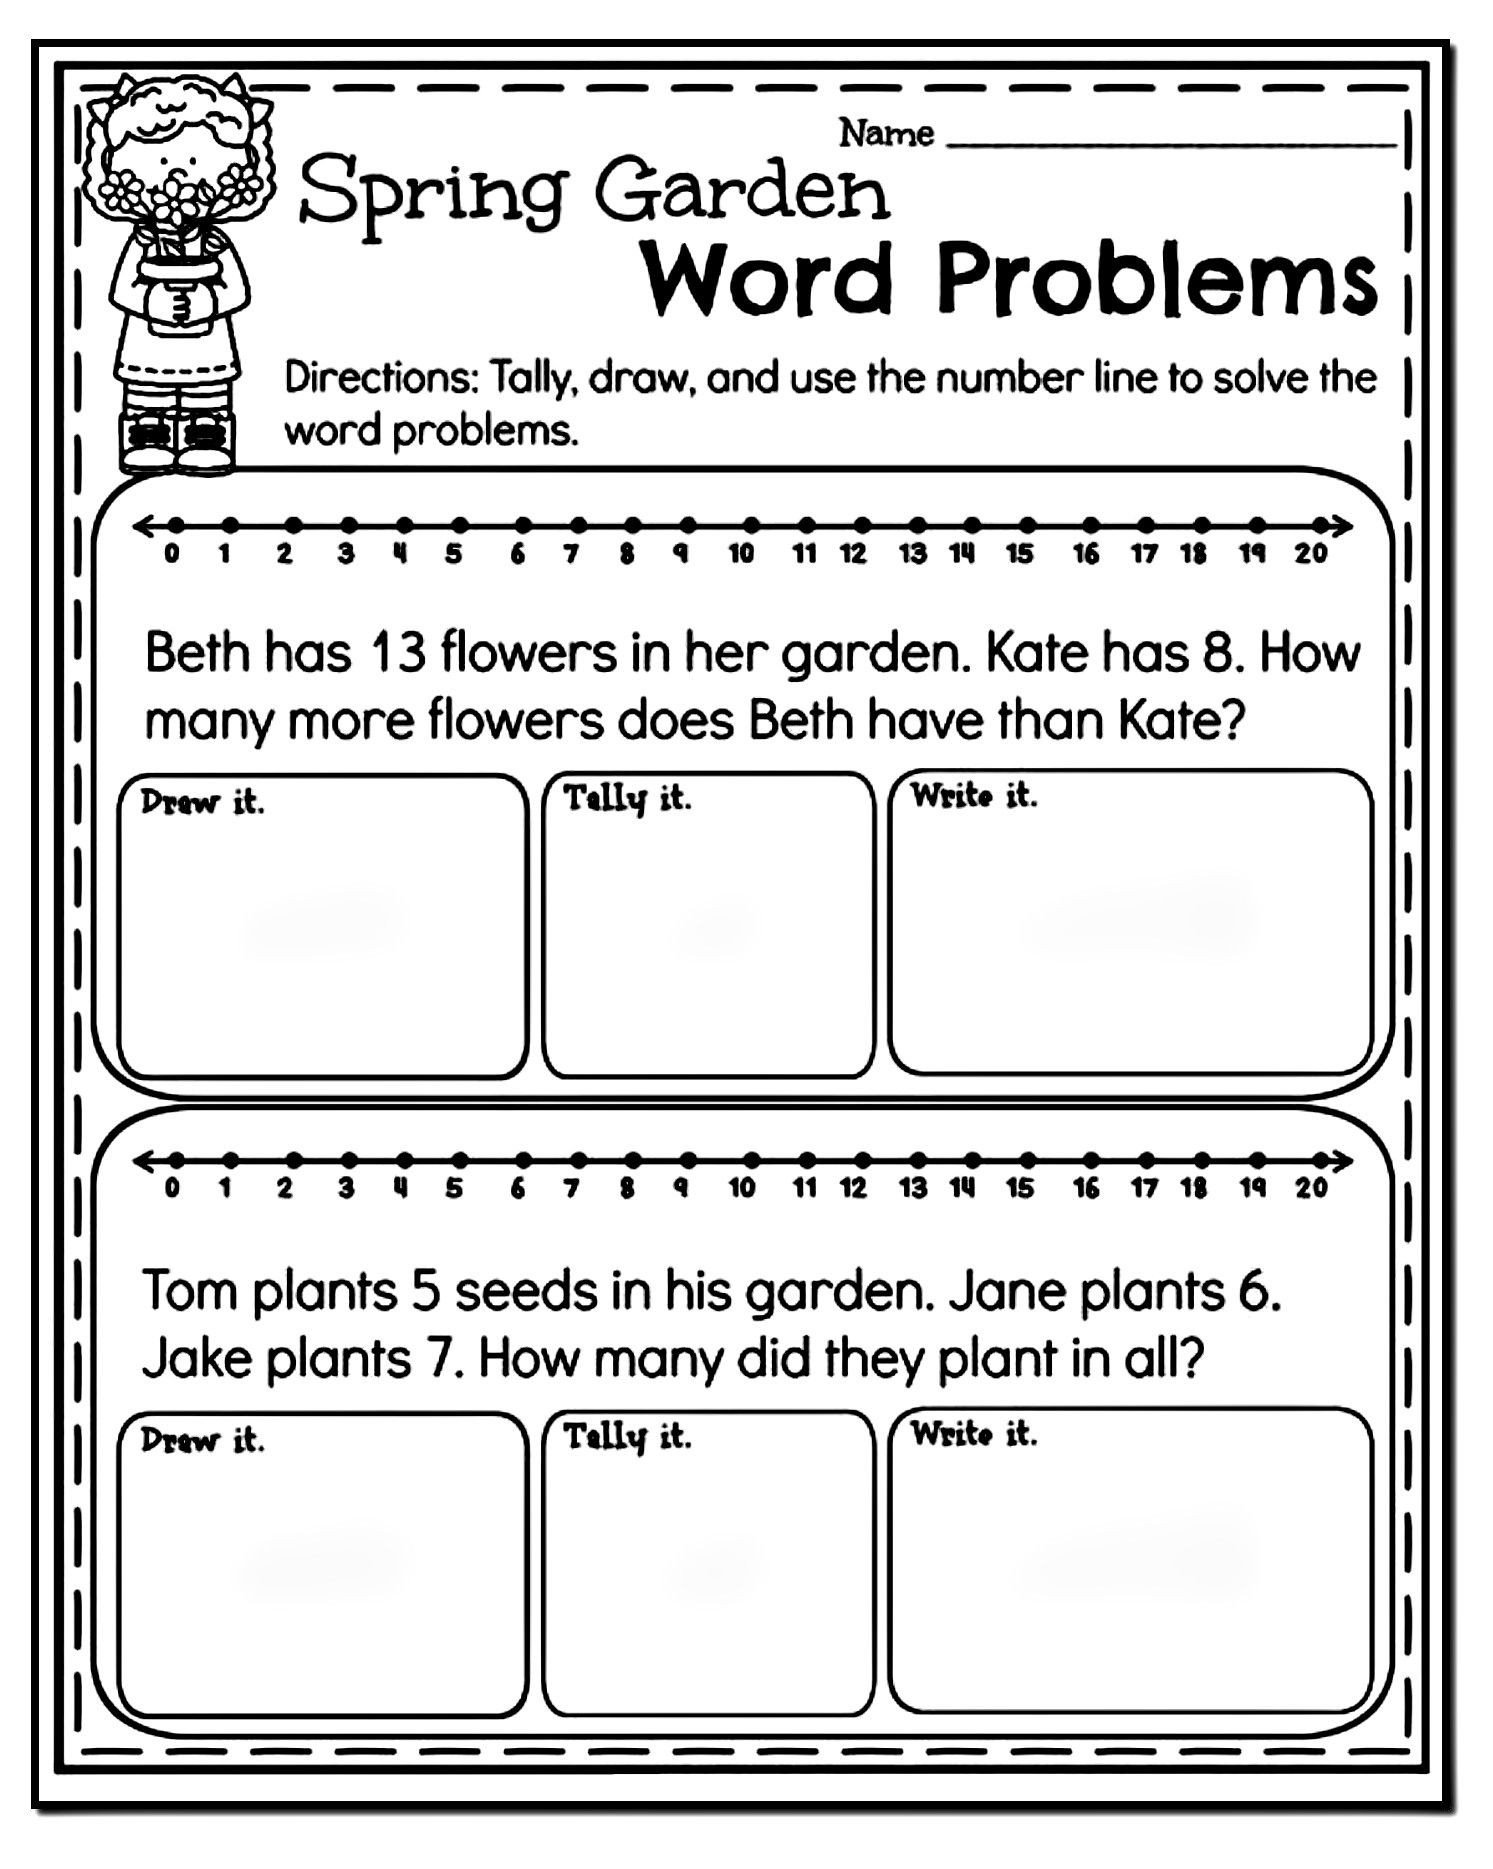 Word Problems Worksheets 1st Grade Pin On Educational Worksheets Template